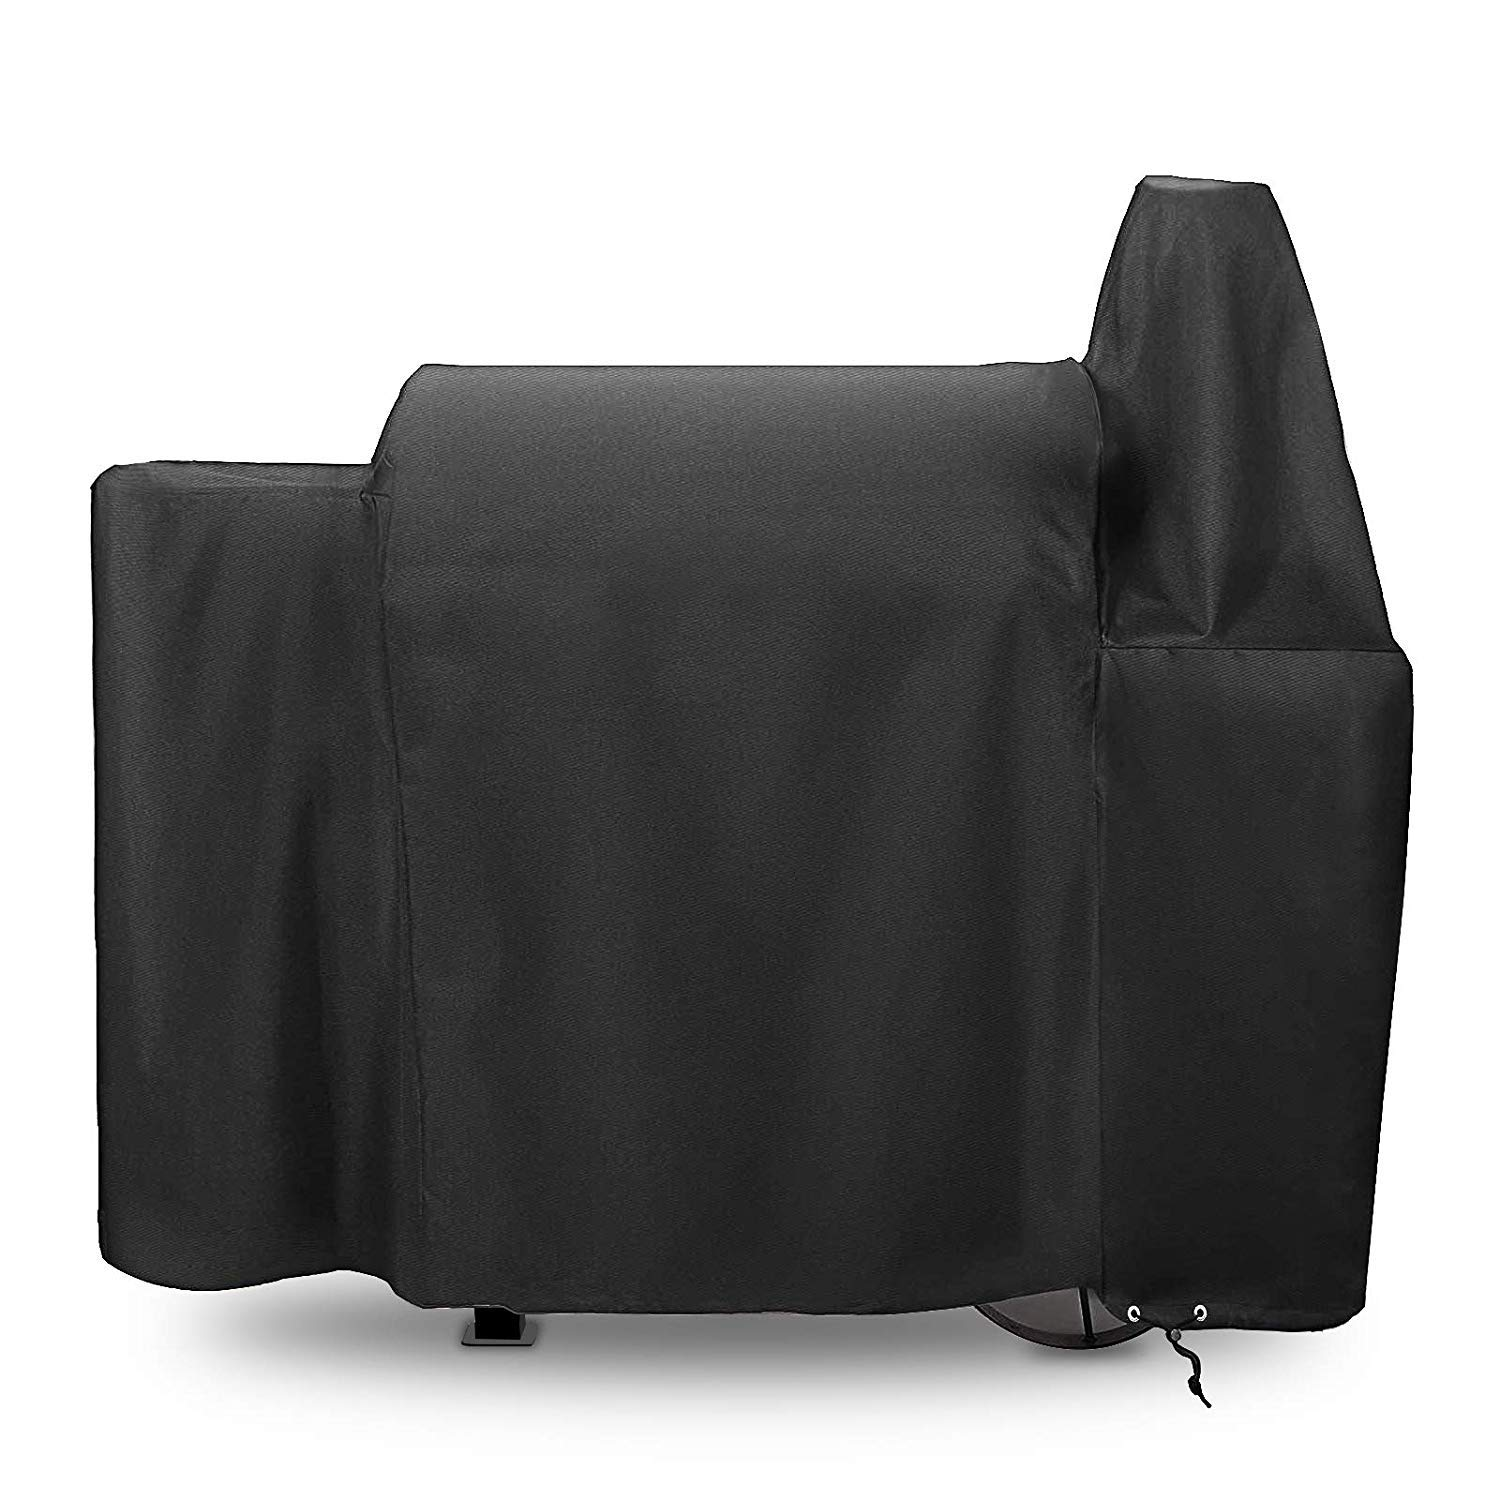 QuliMetal 73820 Grill Cover for Pit Boss 820 Wood Pellet Grills by QuliMetal